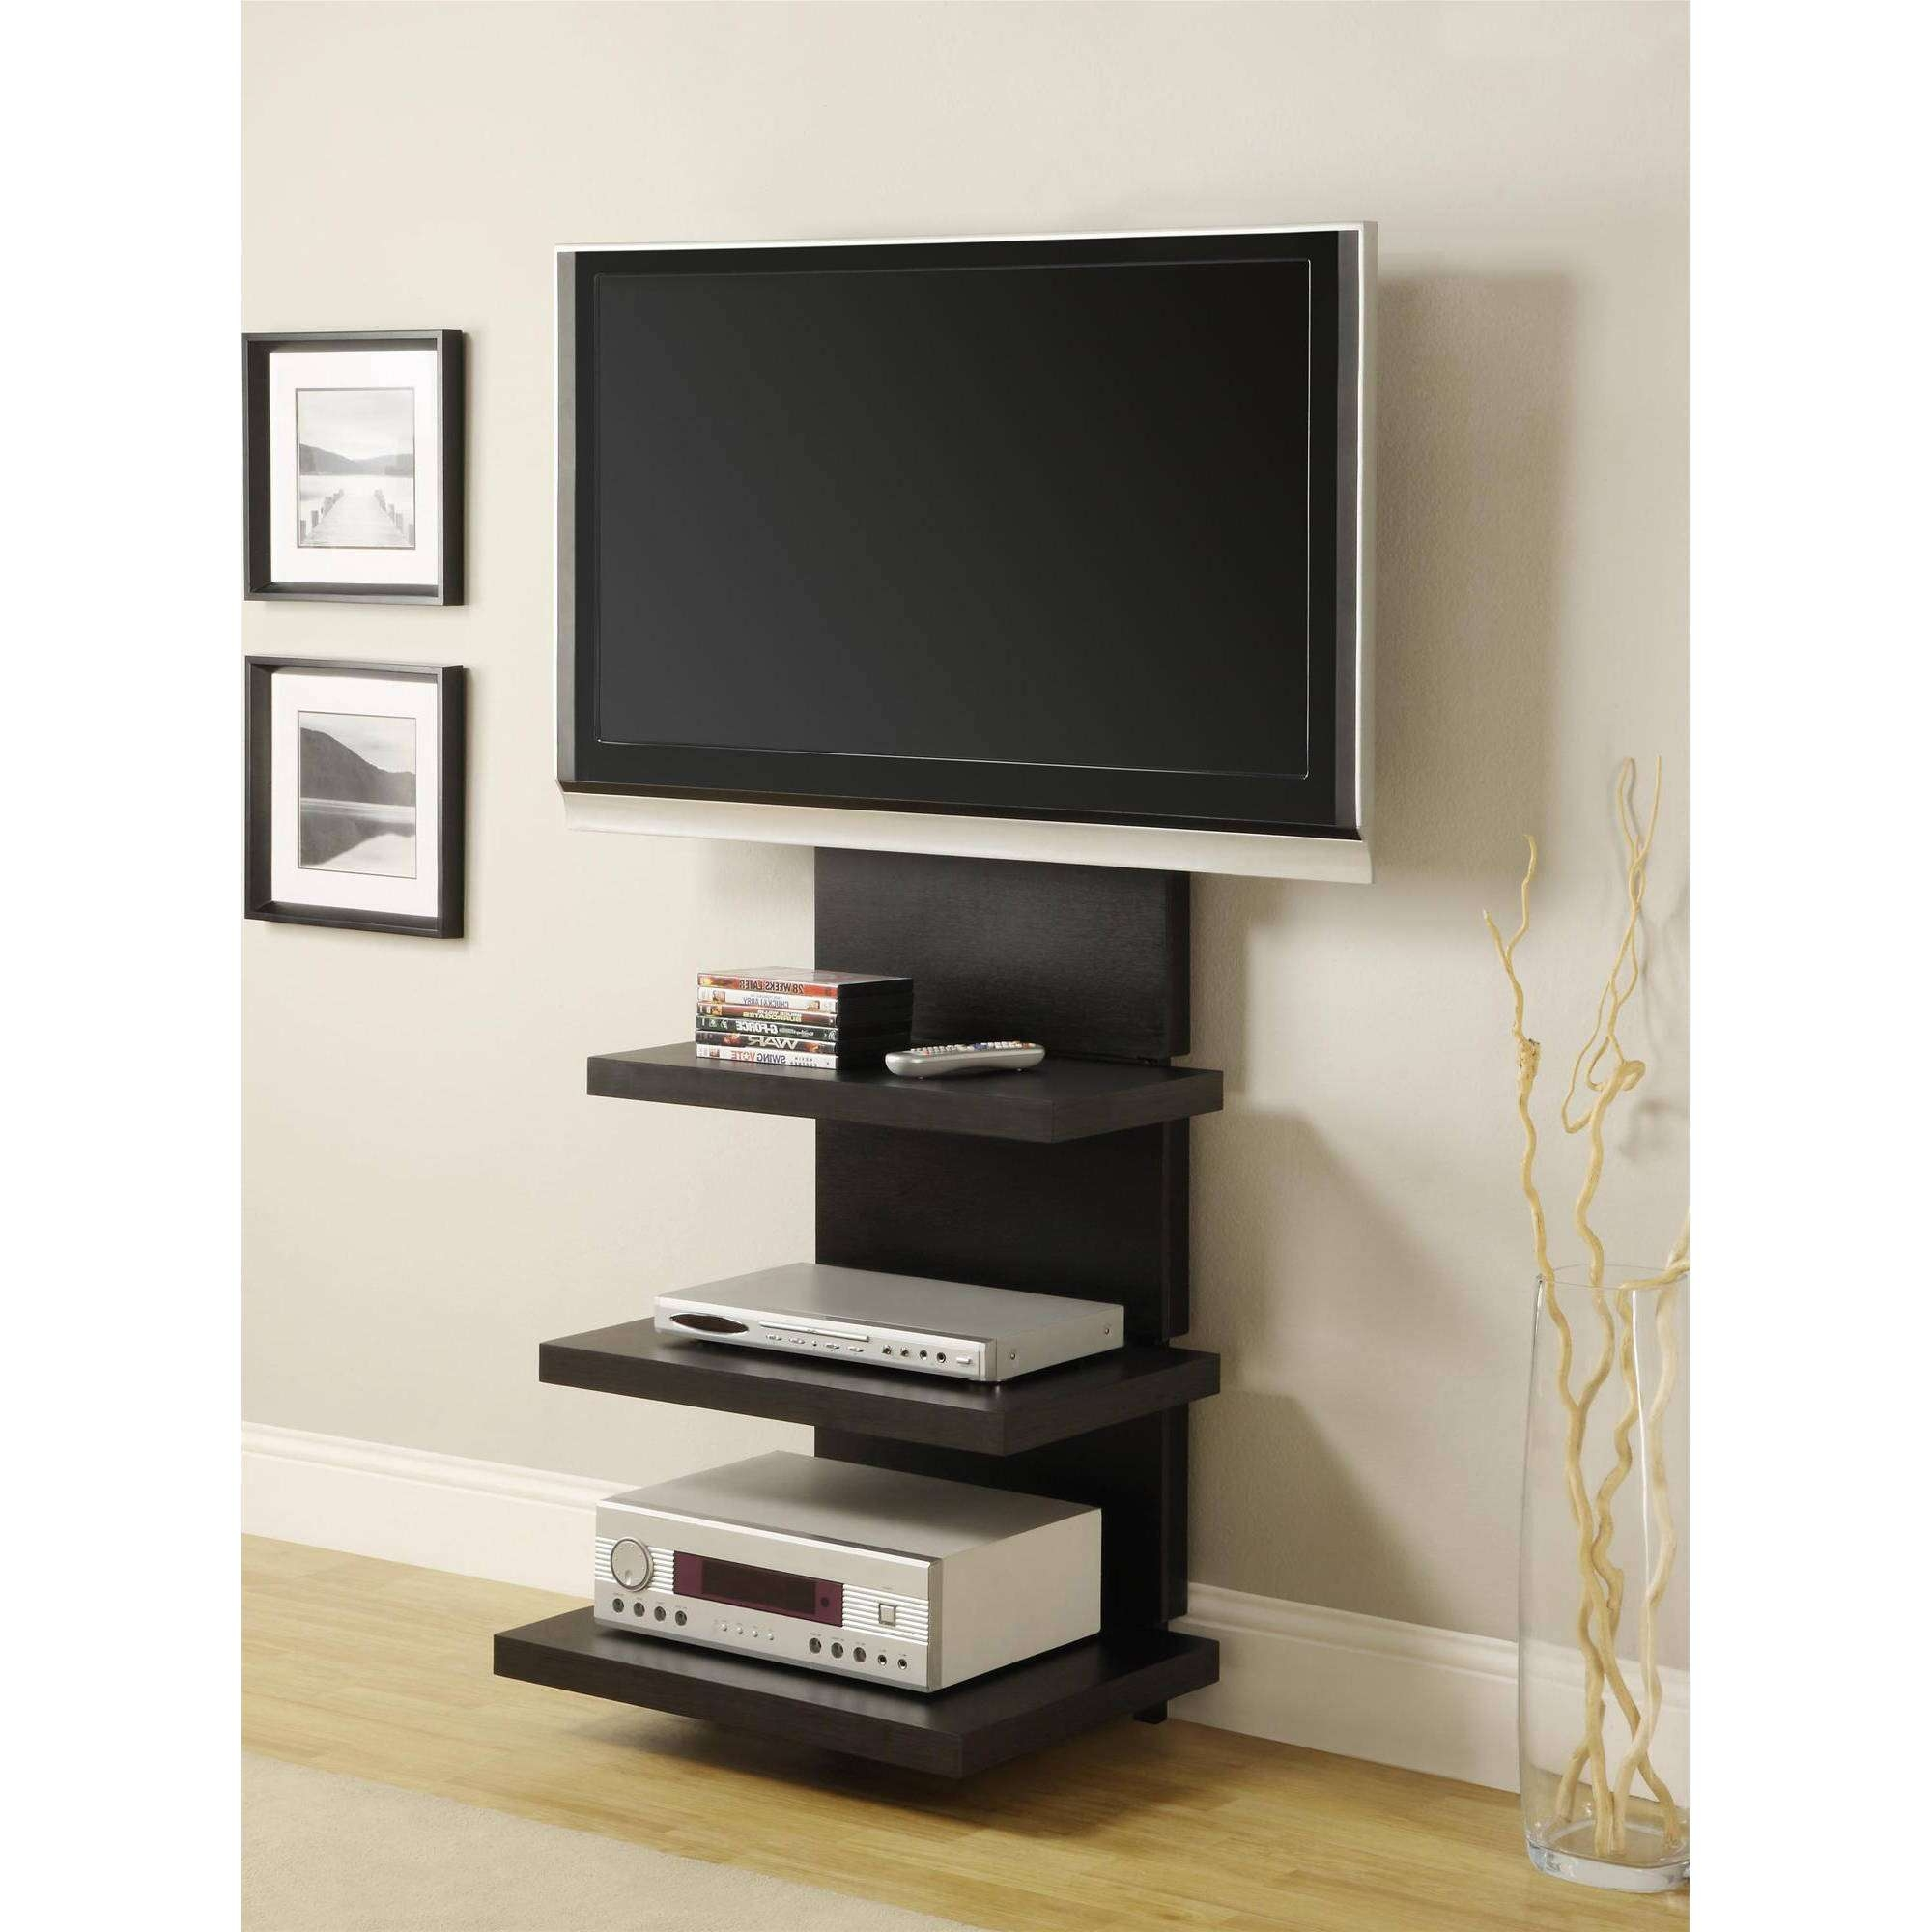 Tv : Marvelous Satiating Avf Buckingham 1100 Tv Stand Oak Beguile Throughout Como Tv Stands (View 11 of 15)